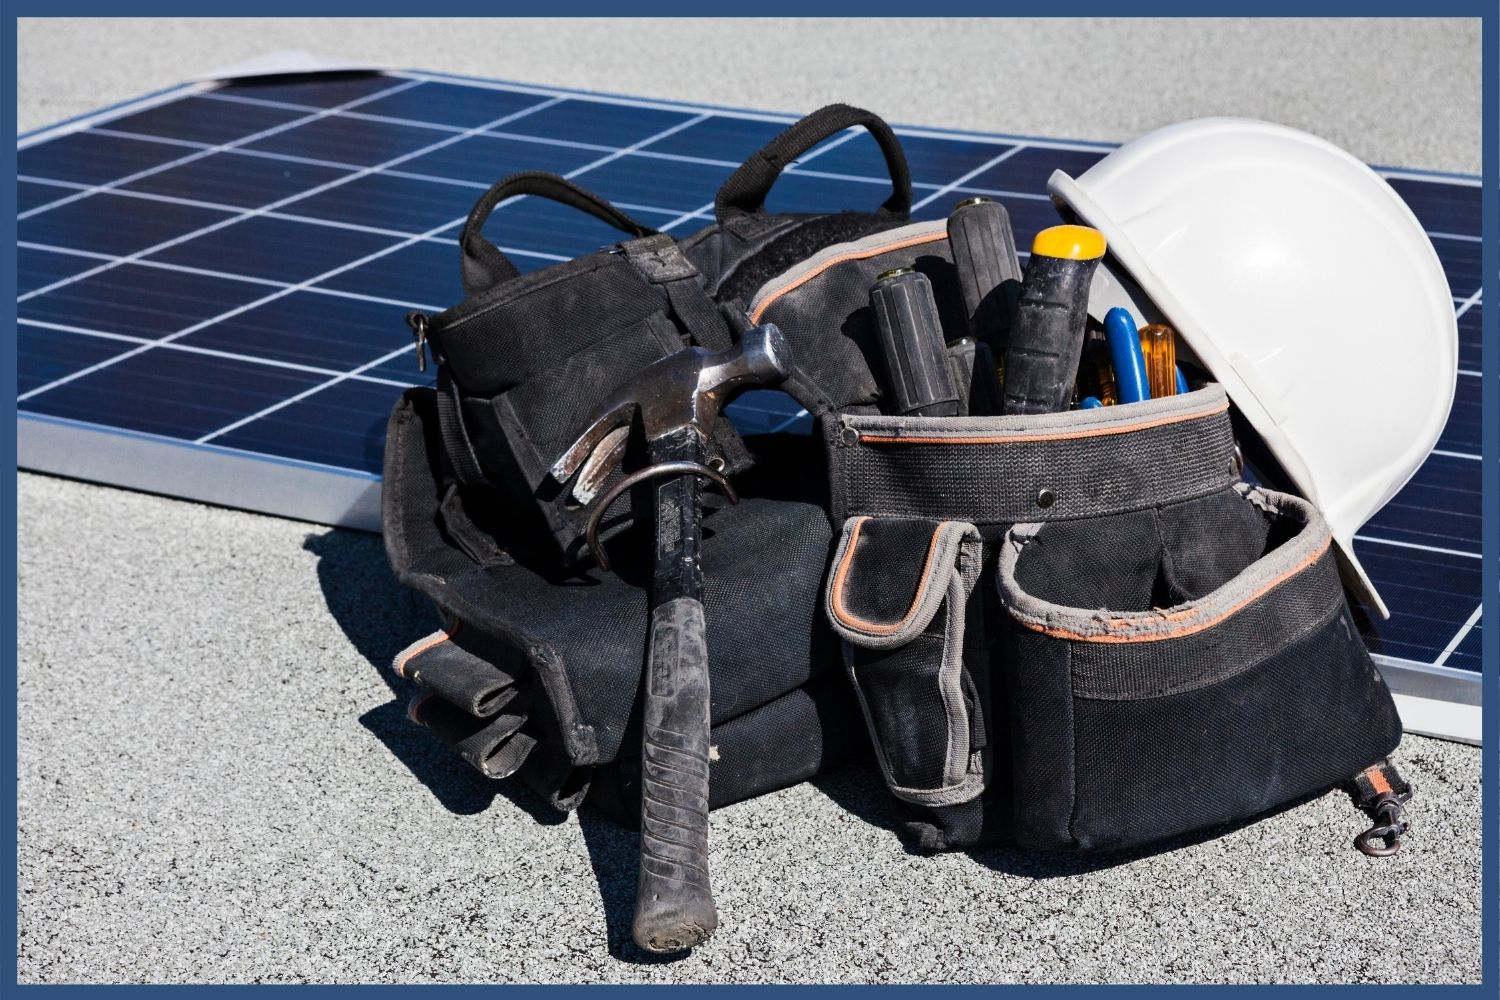 Solar panel with tools